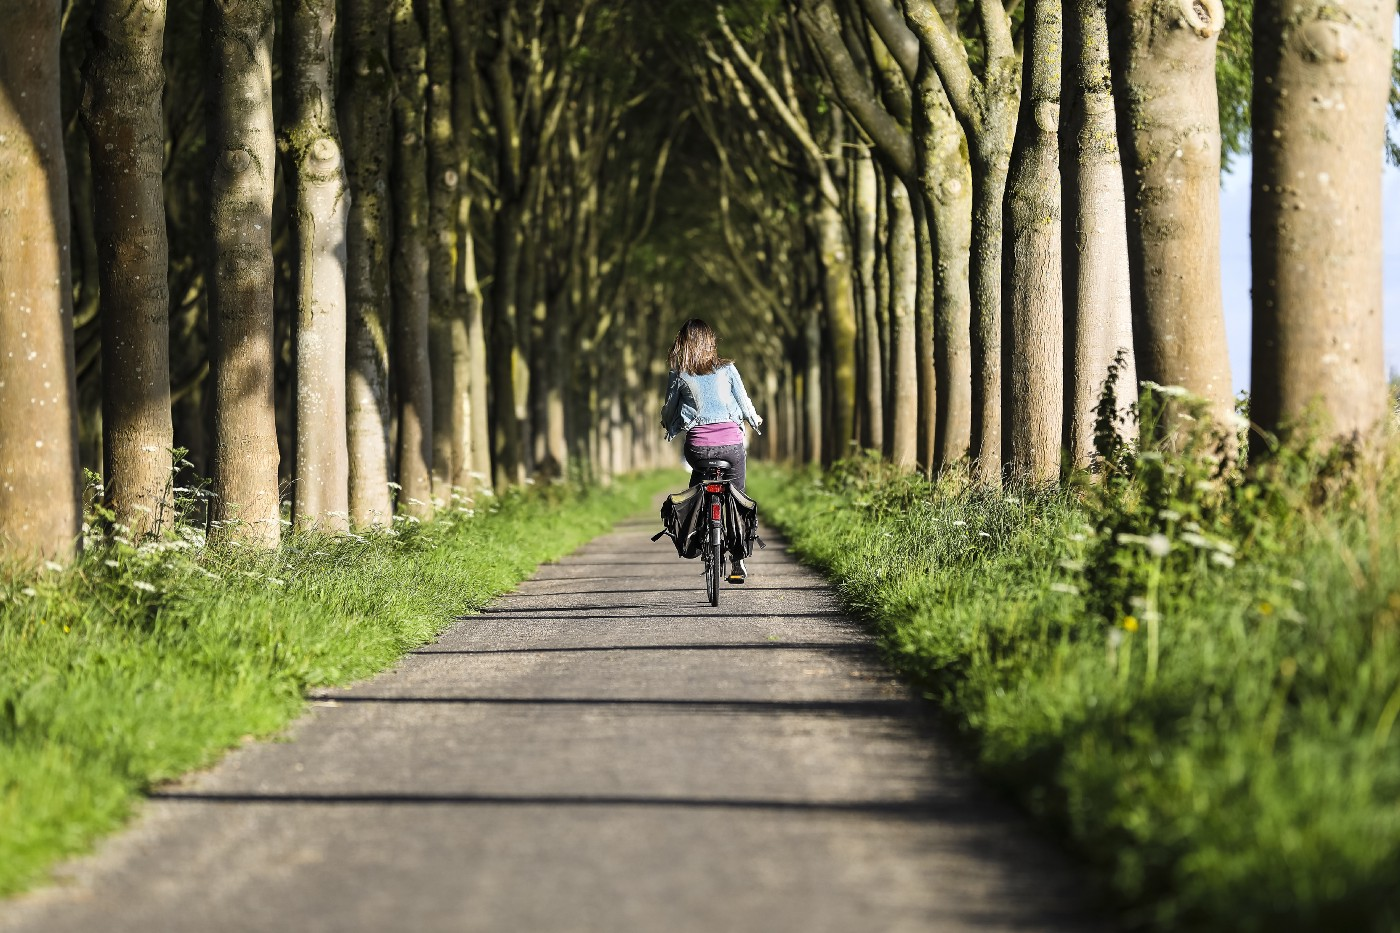 A women going away from the camera with her bike, while peddaling alongside trees.